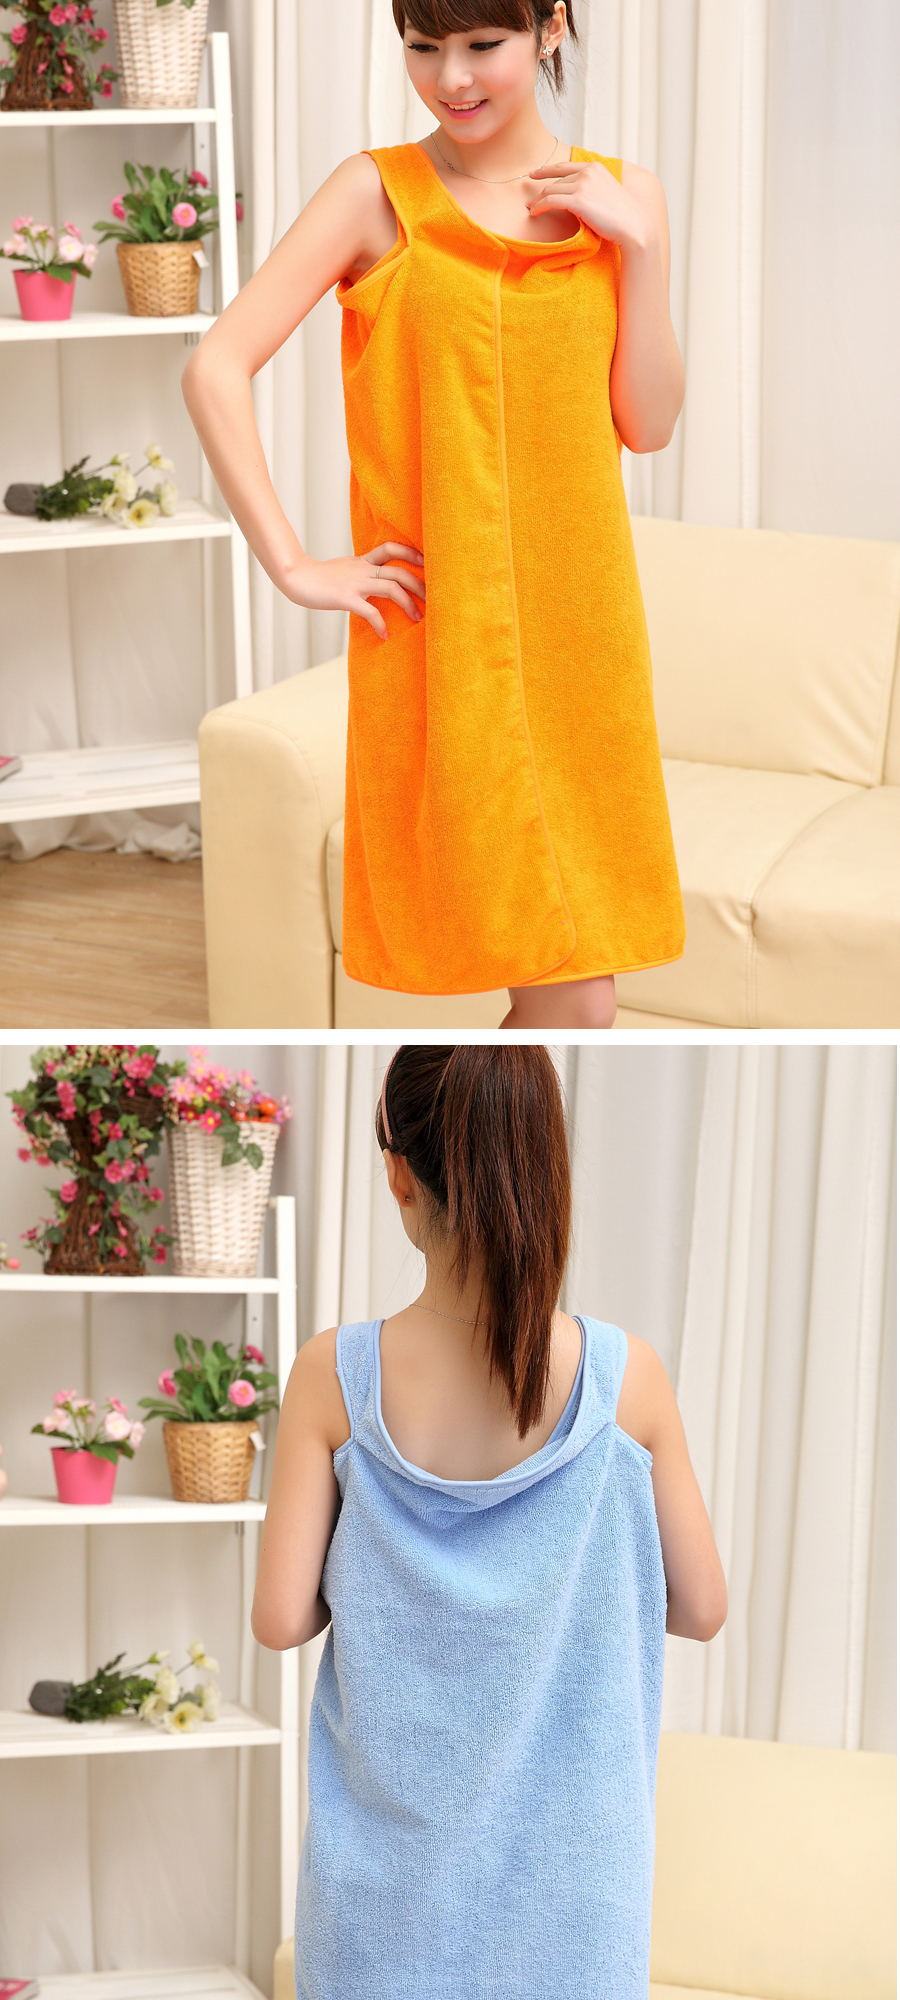 Honana BX-949 Summer Microfiber Soft Beach Able Wear Spa BathRobe Plush Highly Absorbent Bath Towel Skirt